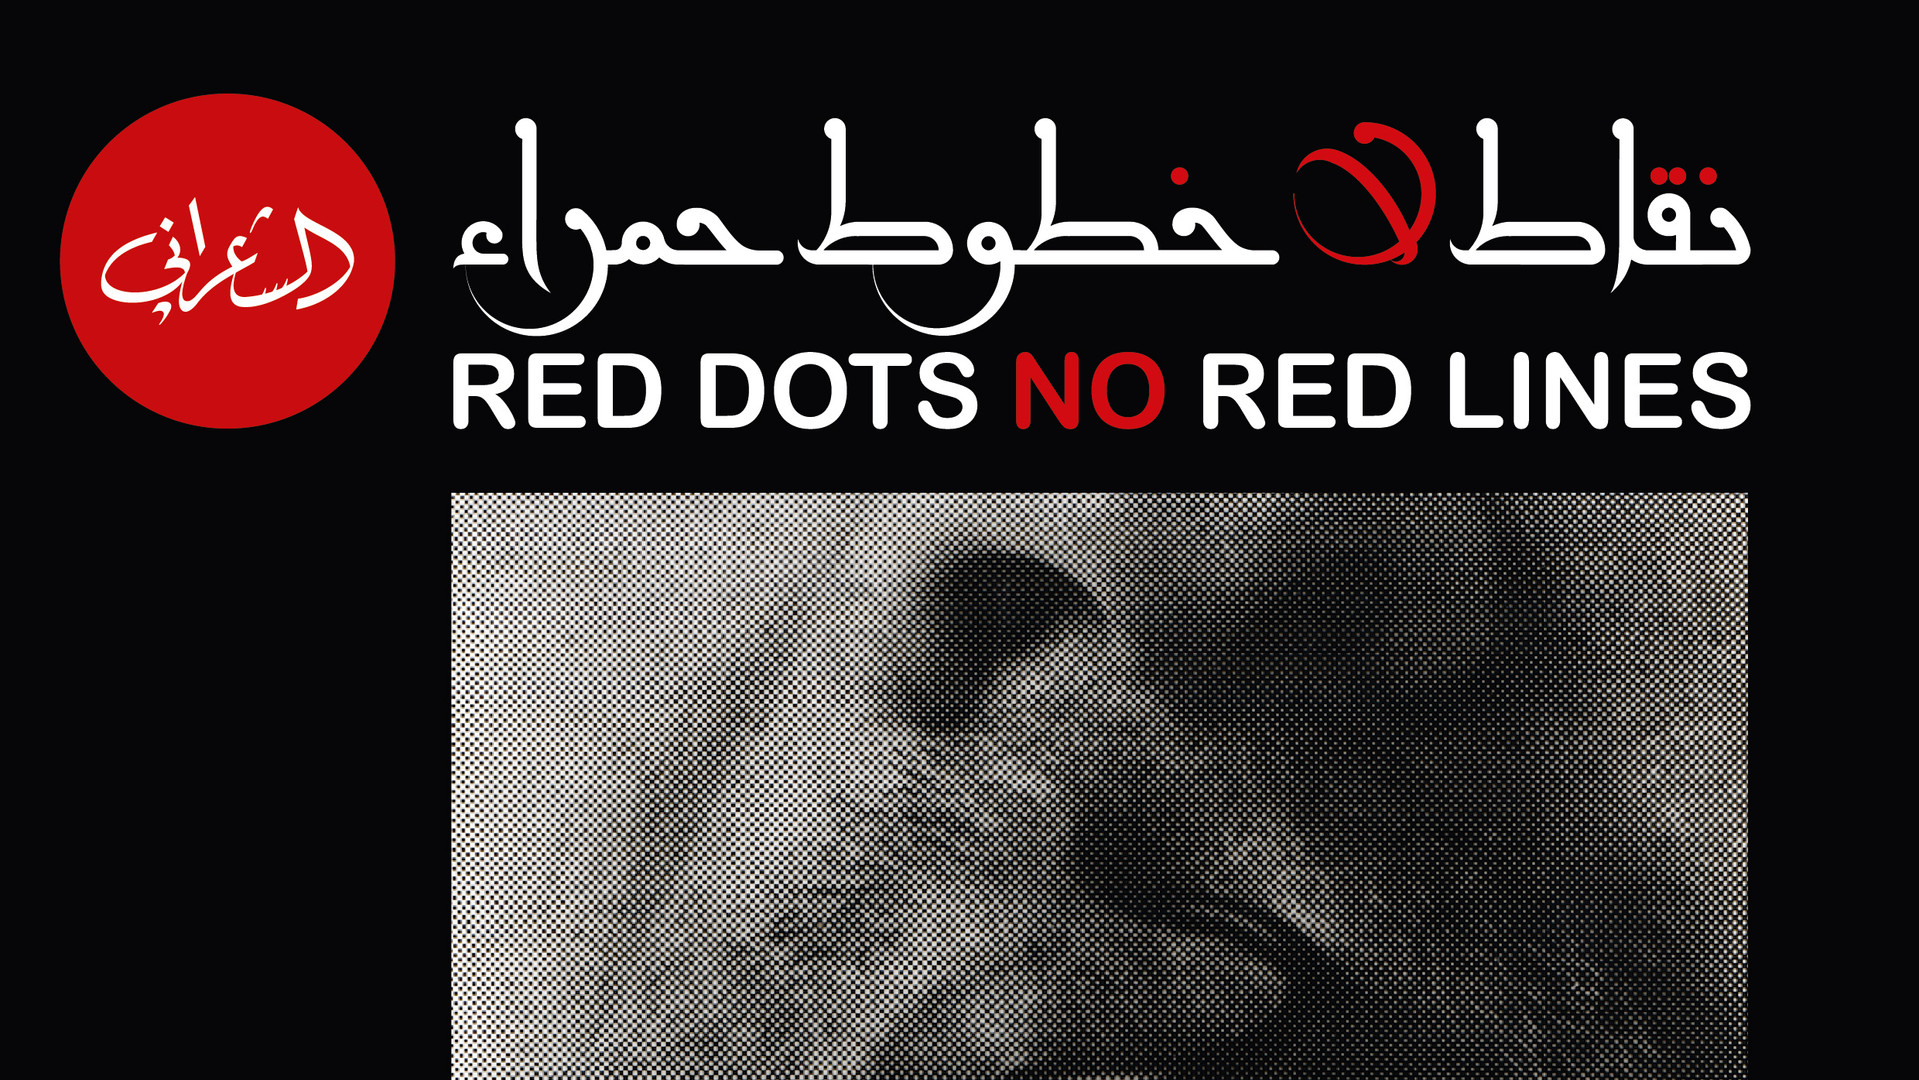 Red Dots No Red Lines